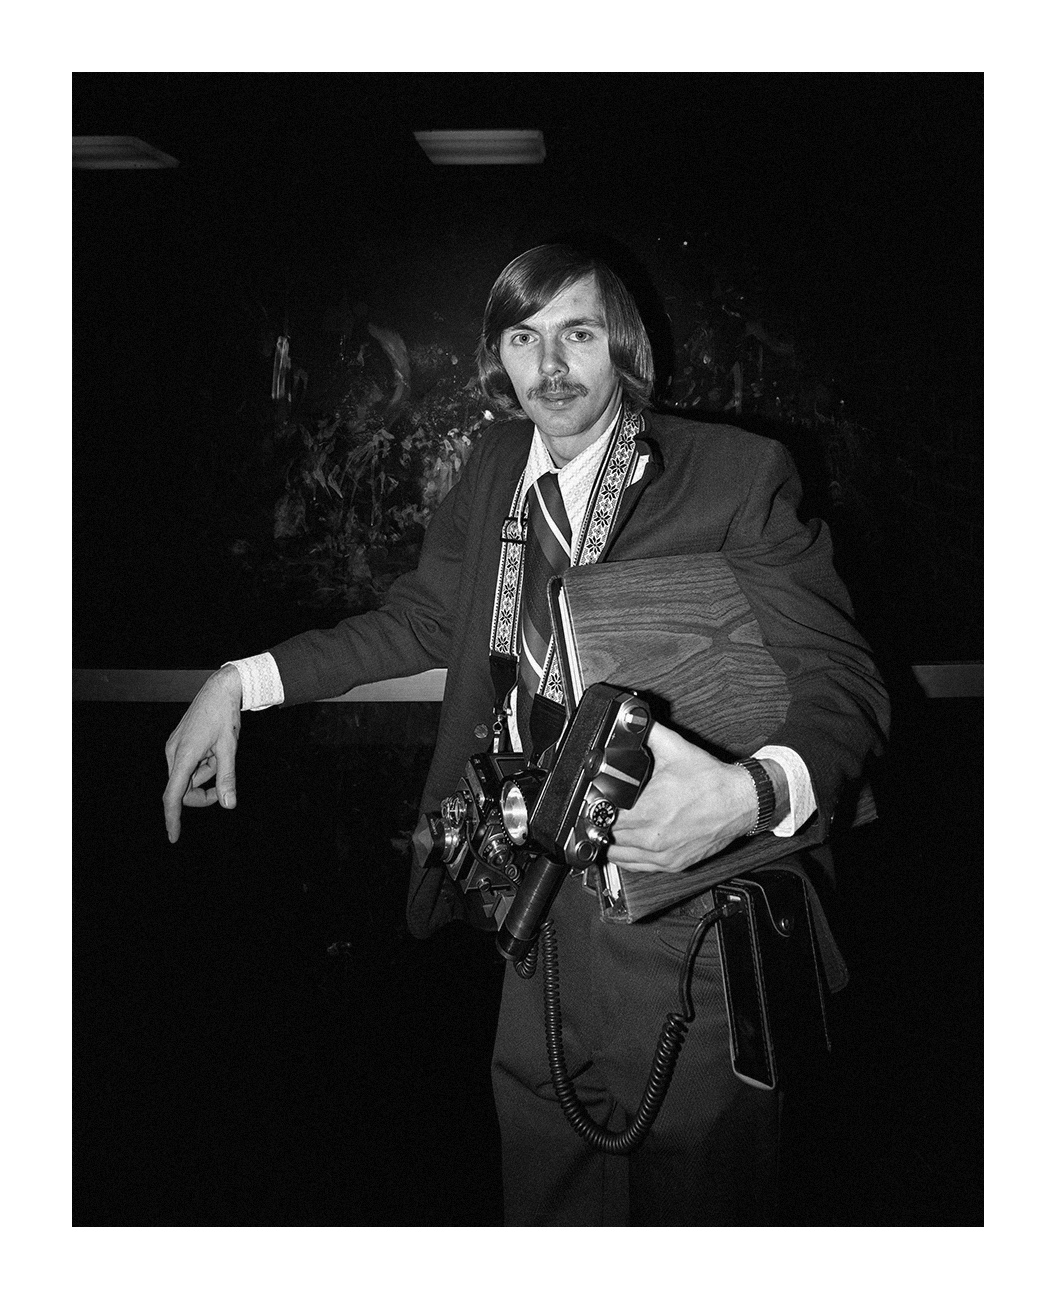 A Freelance Fashion Photographer at the Detroit Auto Show, Detroit, 25 Nov. 1973